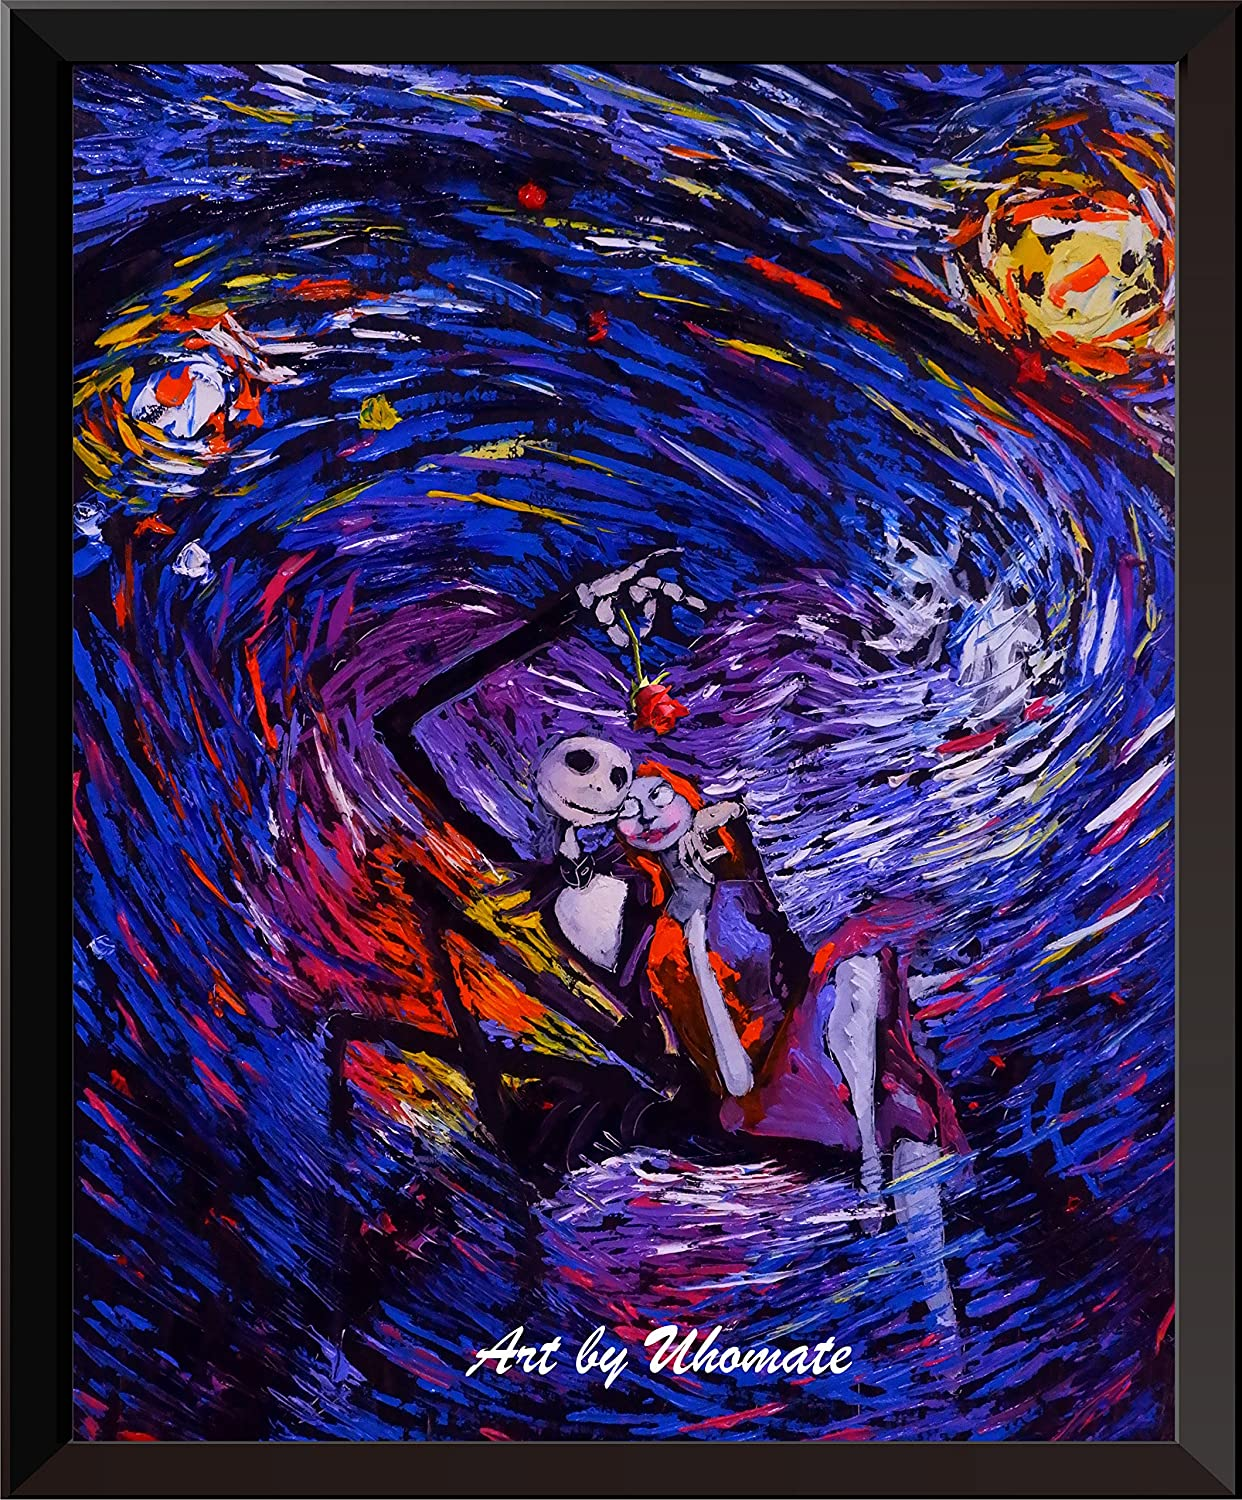 Uhomate Jack Sally Jack and Sally Nightmare Before Christmas Vincent Van Gogh Starry Night Posters Home Canvas Wall Art Baby Gift Nursery Decor Living Room Wall Decor A015 (11X14)